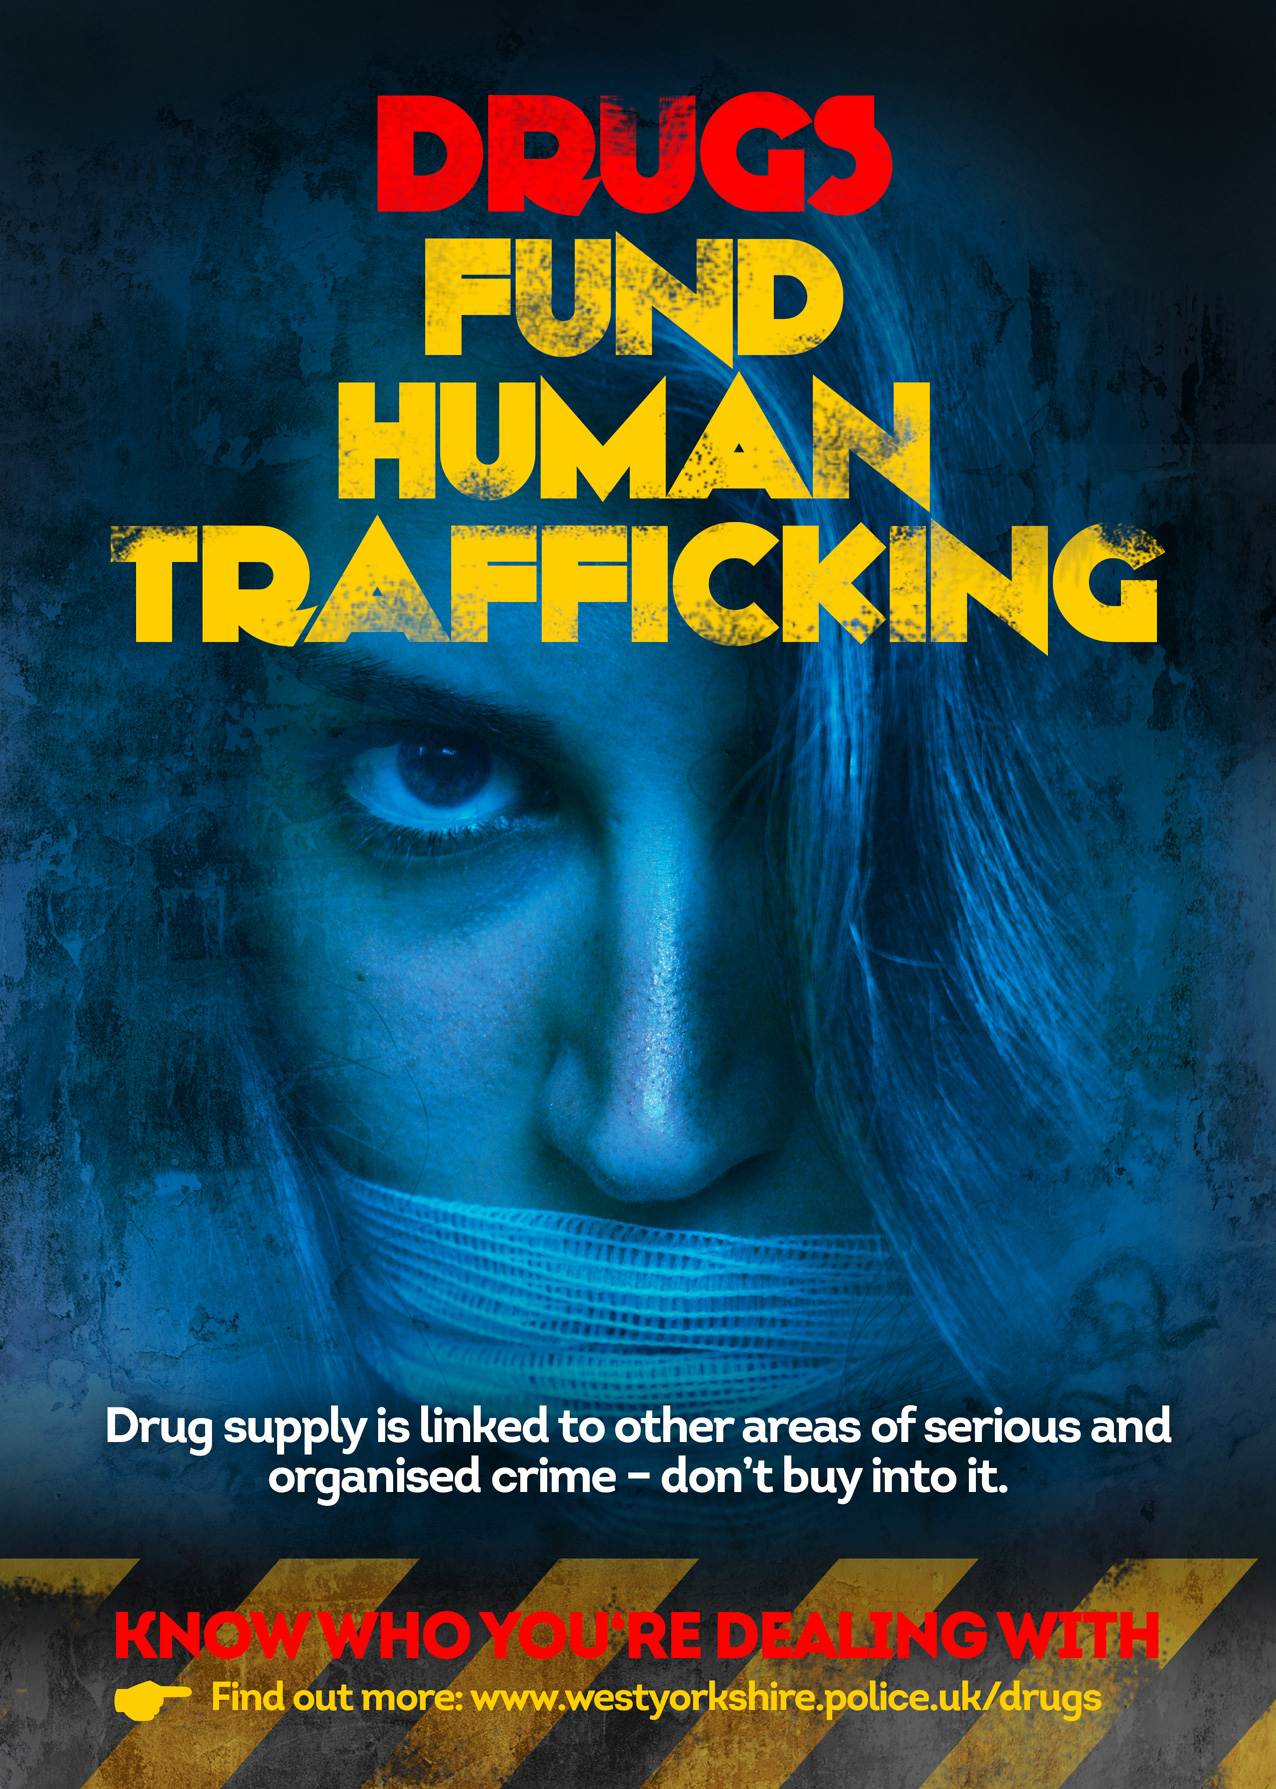 Drugs Fund Human Trafficking Poster